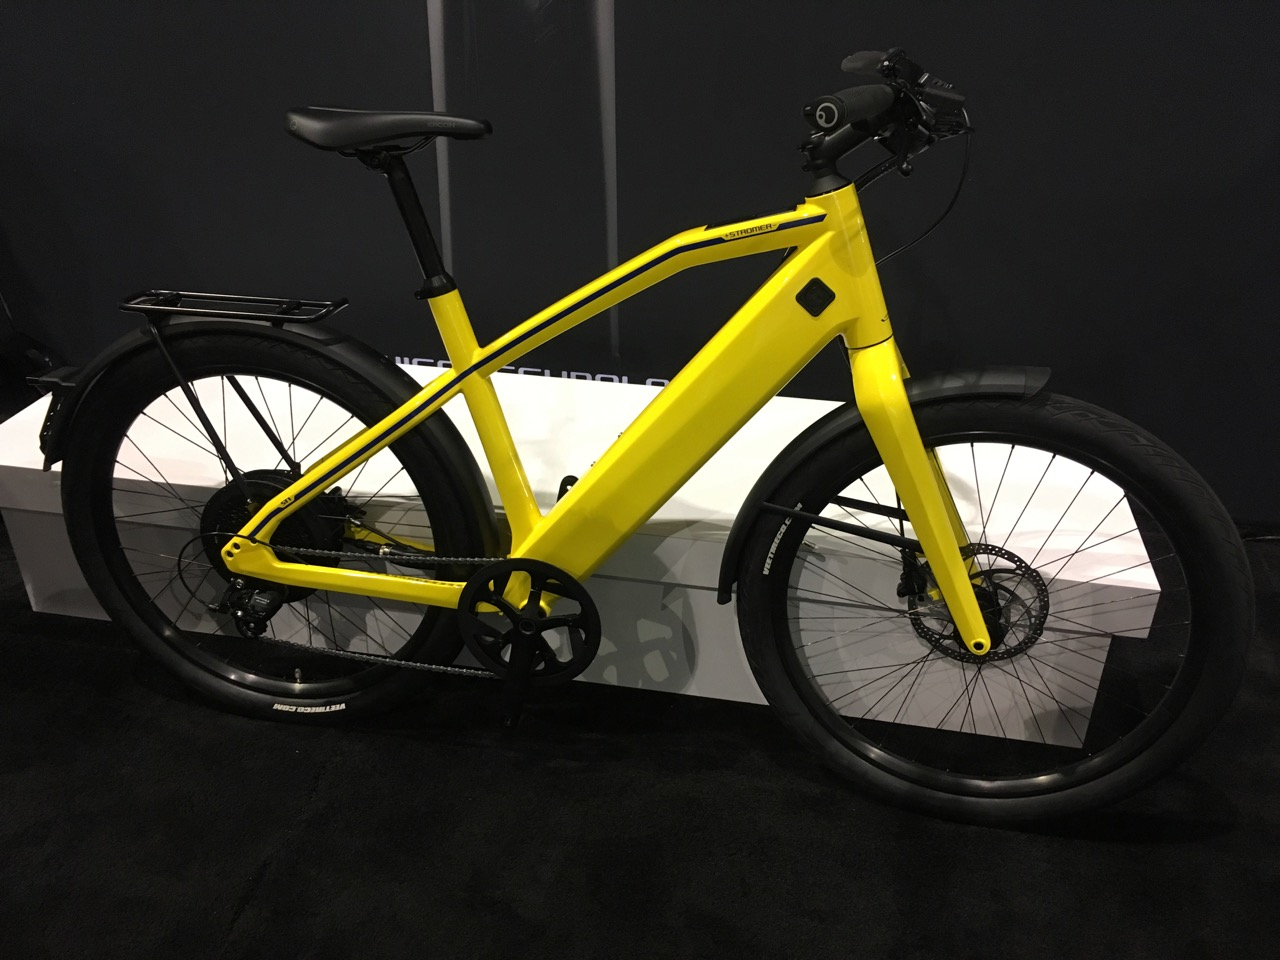 Interbike Reno 2018: Here are all the cool and crazy new